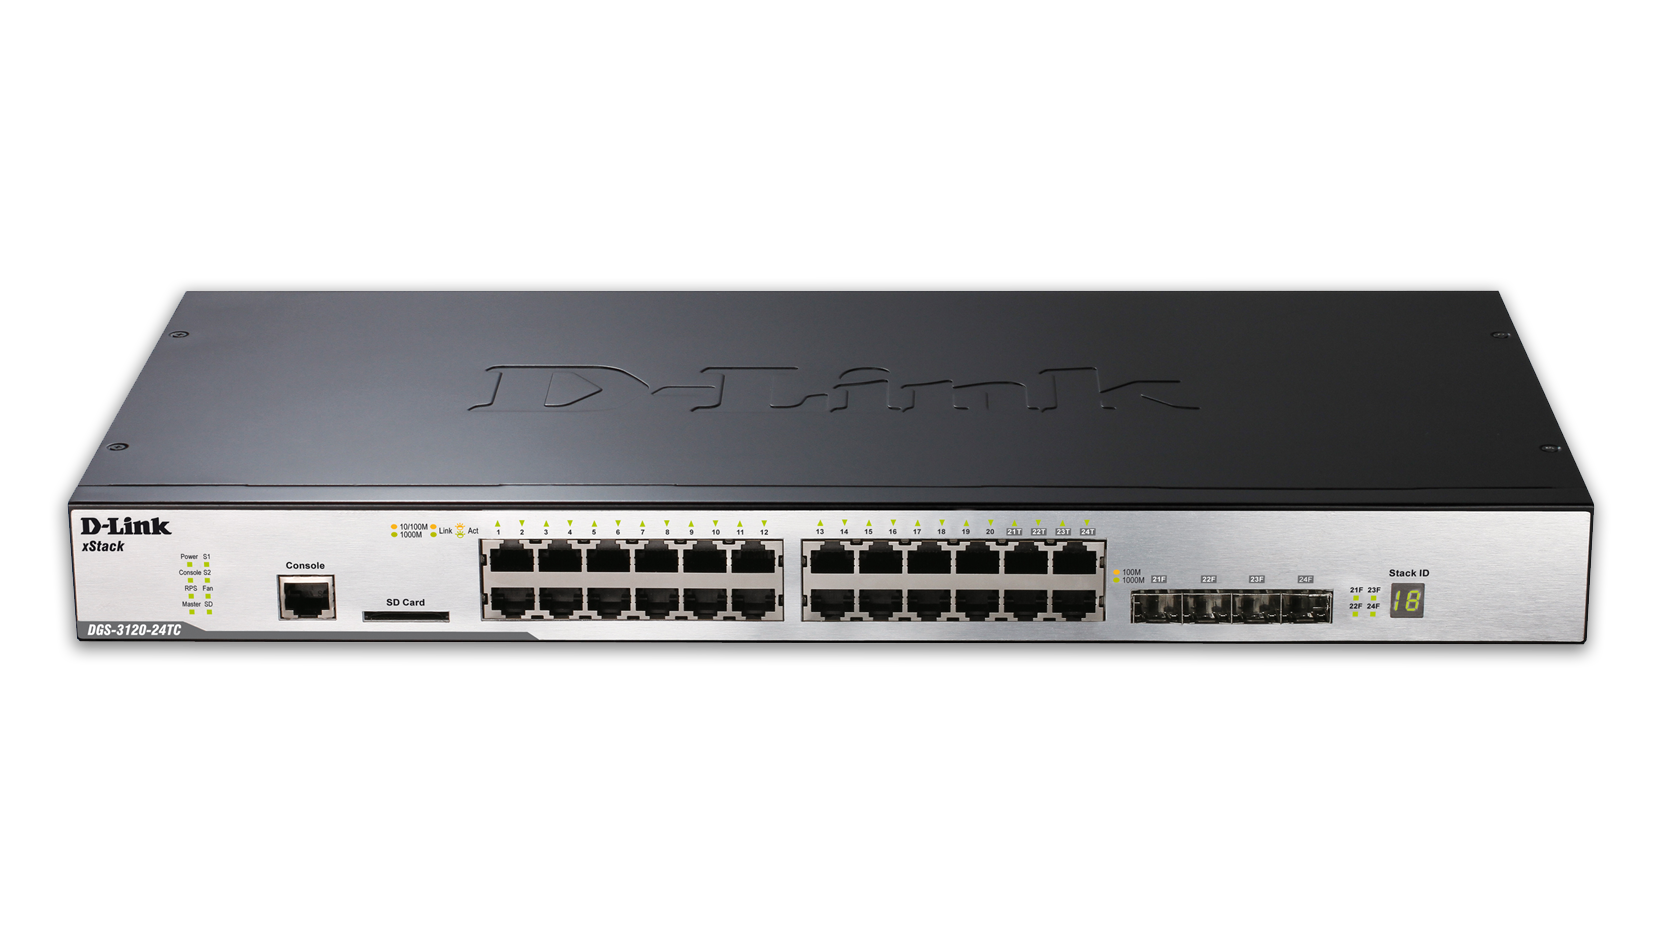 24 port managed gigabit stackable l2 switch including 4 combo sfp ports d link